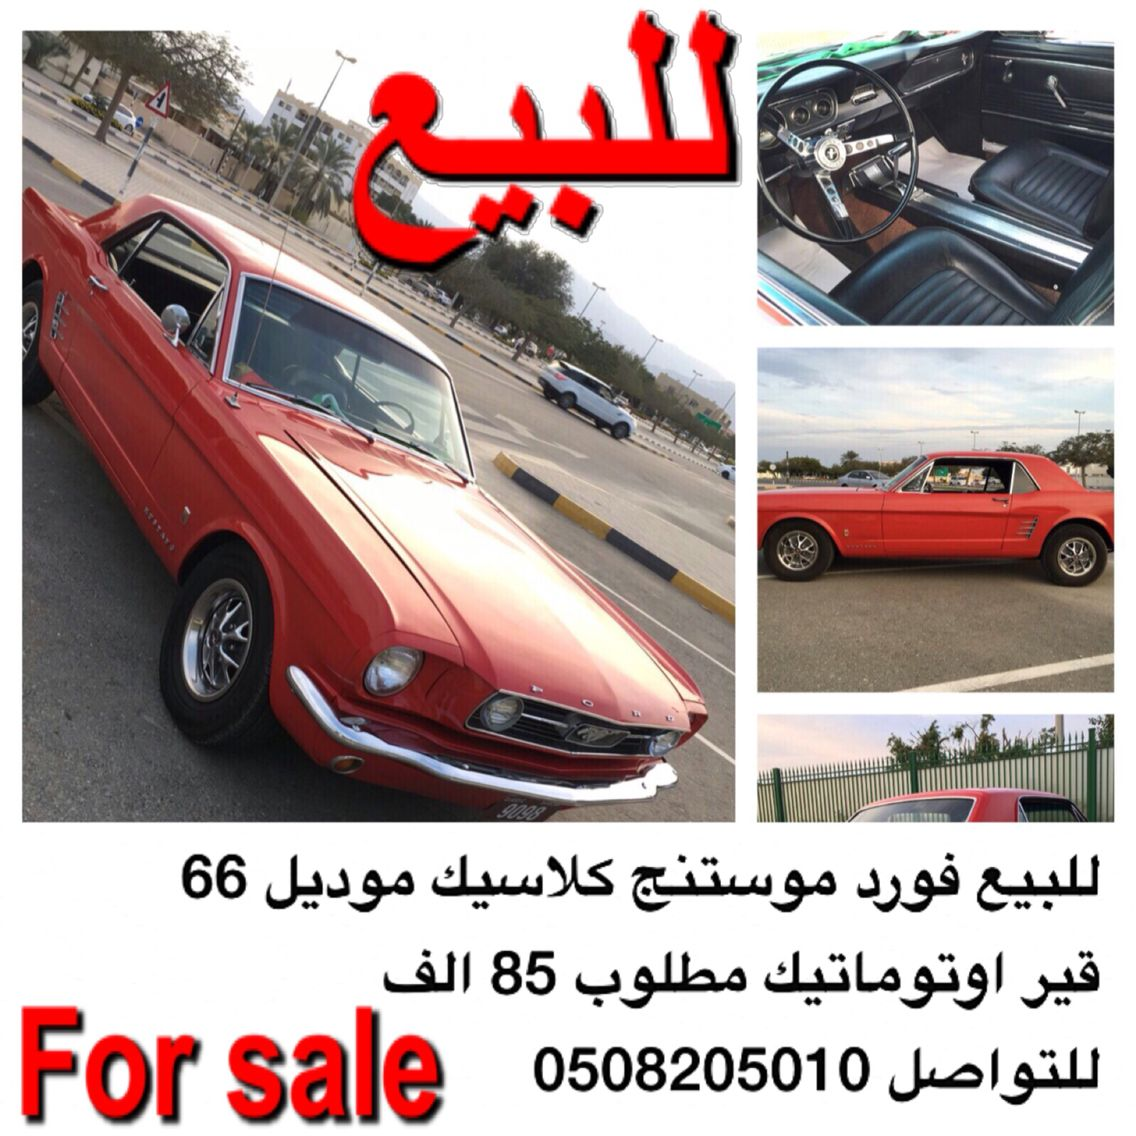 Pin By Uae4 Cars2u On My Saves In 2021 Vehicles Car